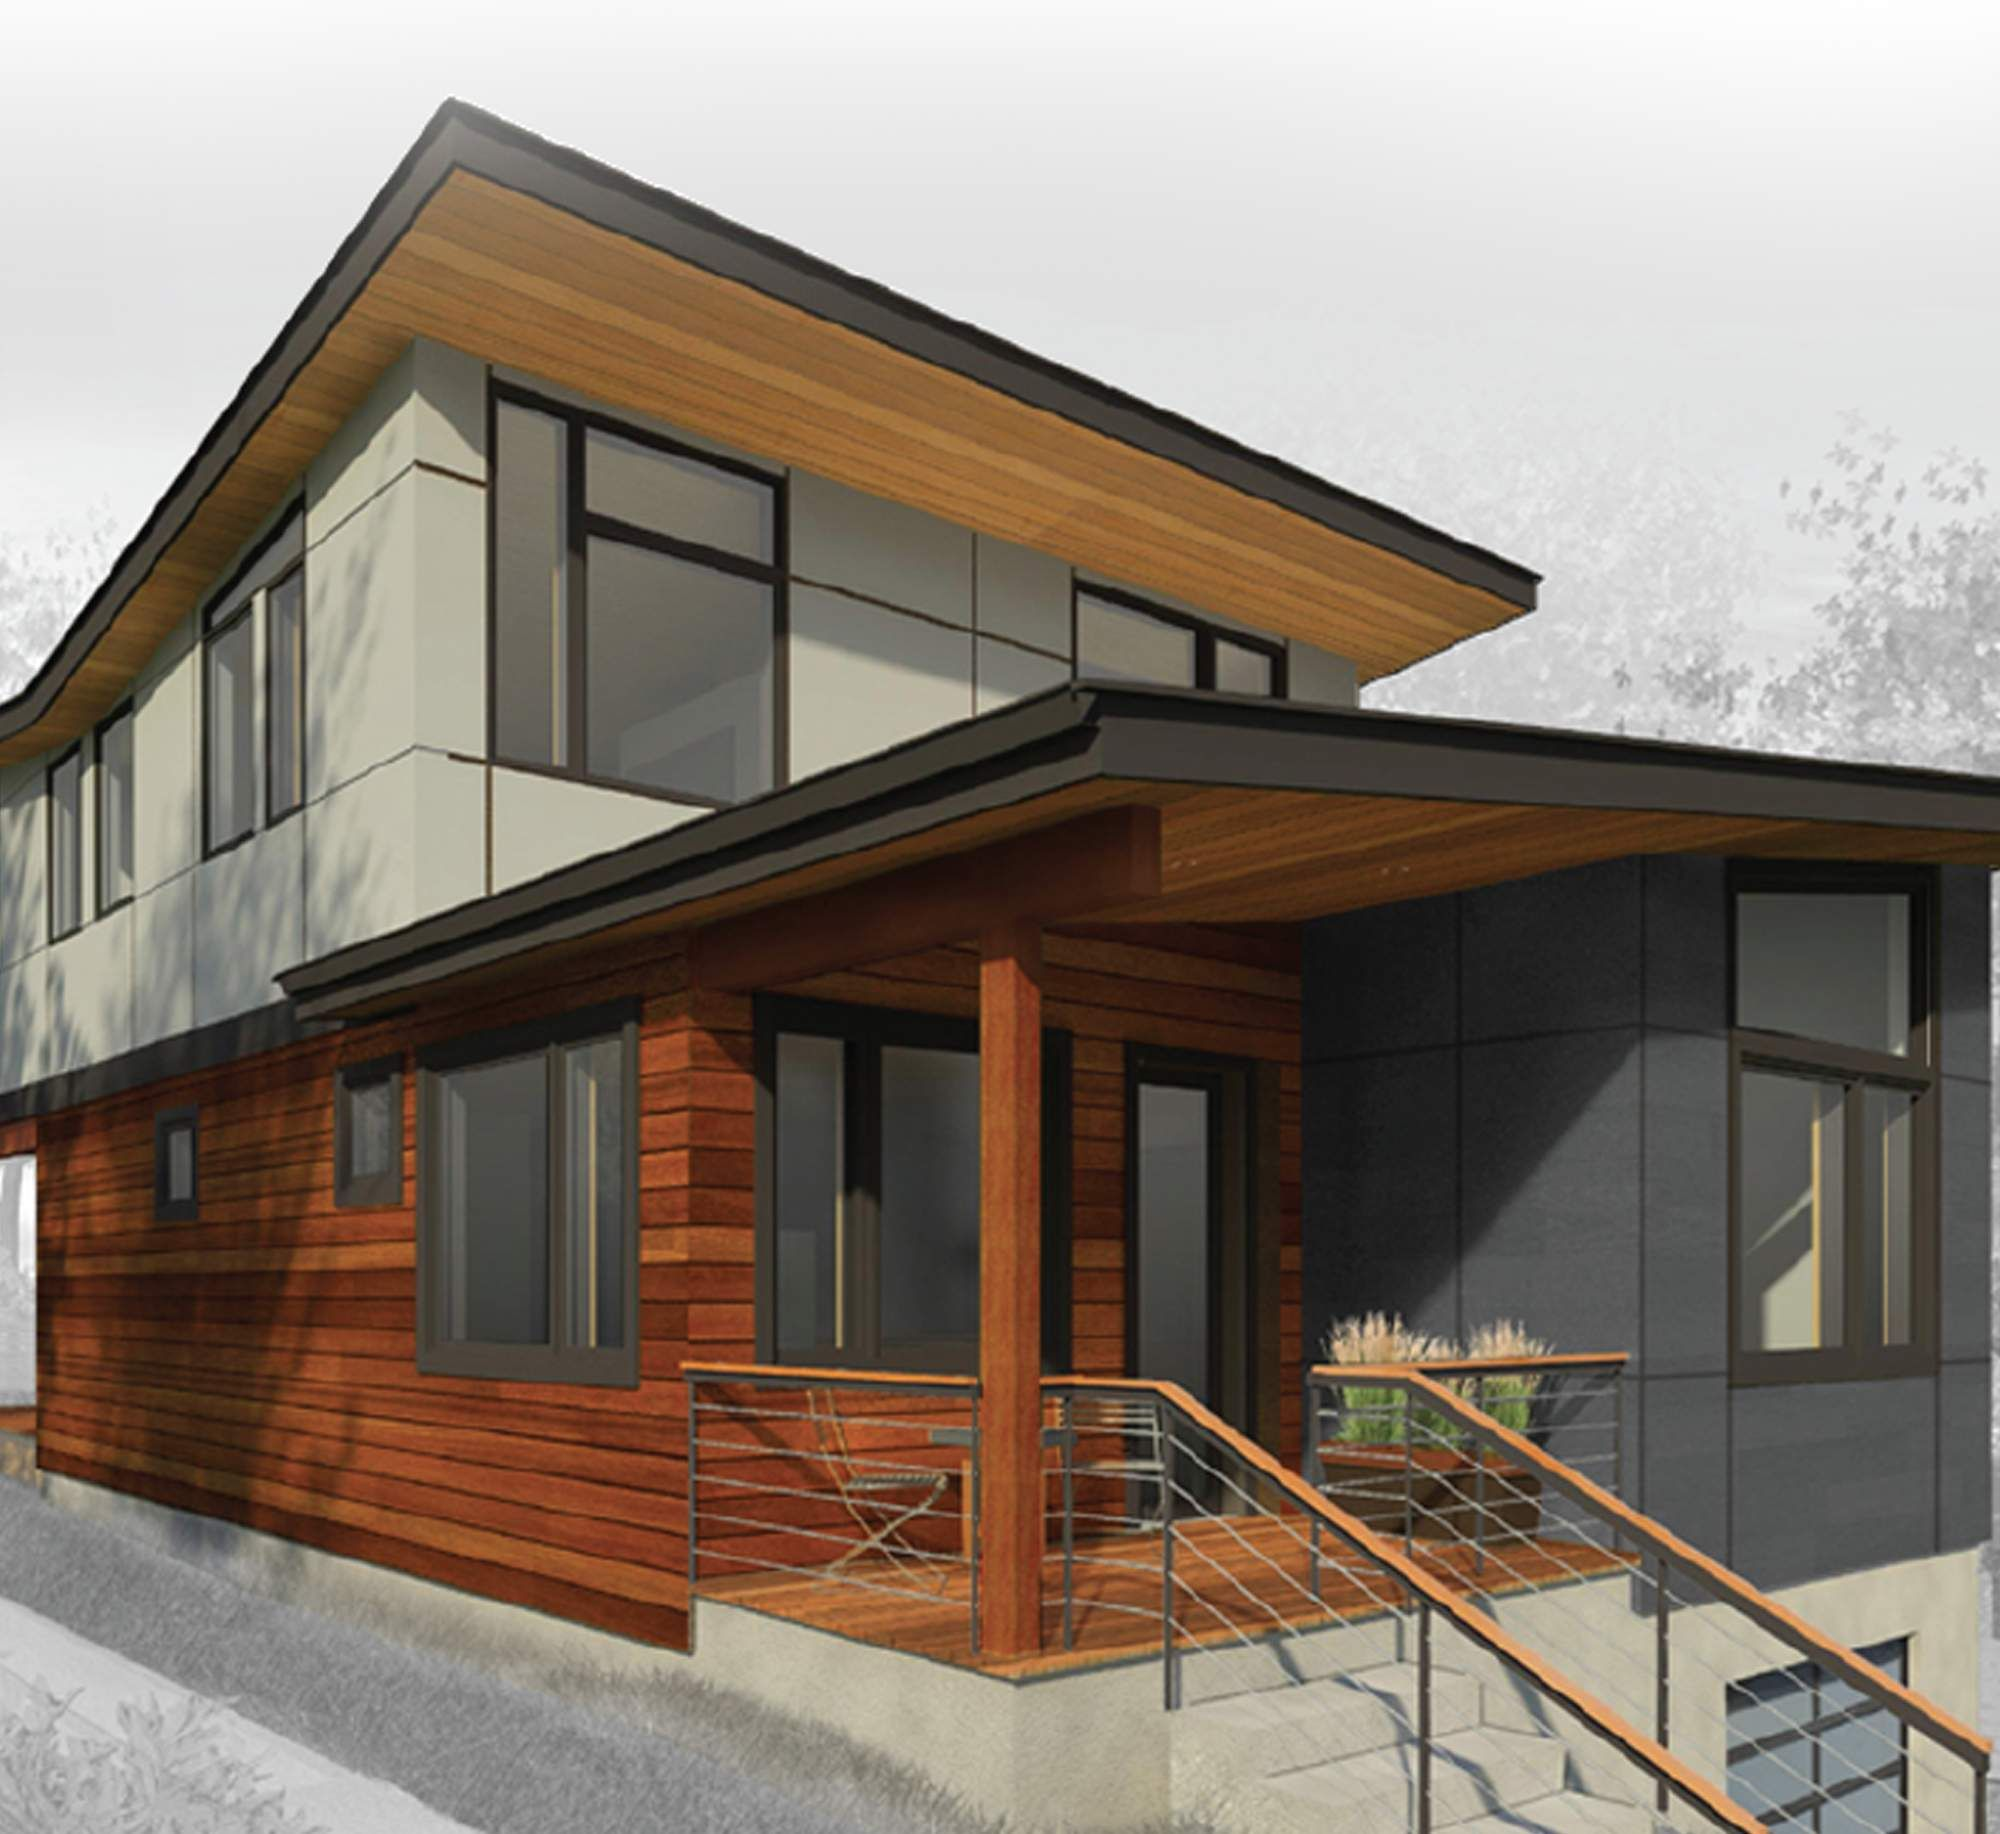 25 Gorgeous Prefab Houses And The Cheapest Land In Every State To Put Them On Prefab Homes Cheap Houses To Build Prefab